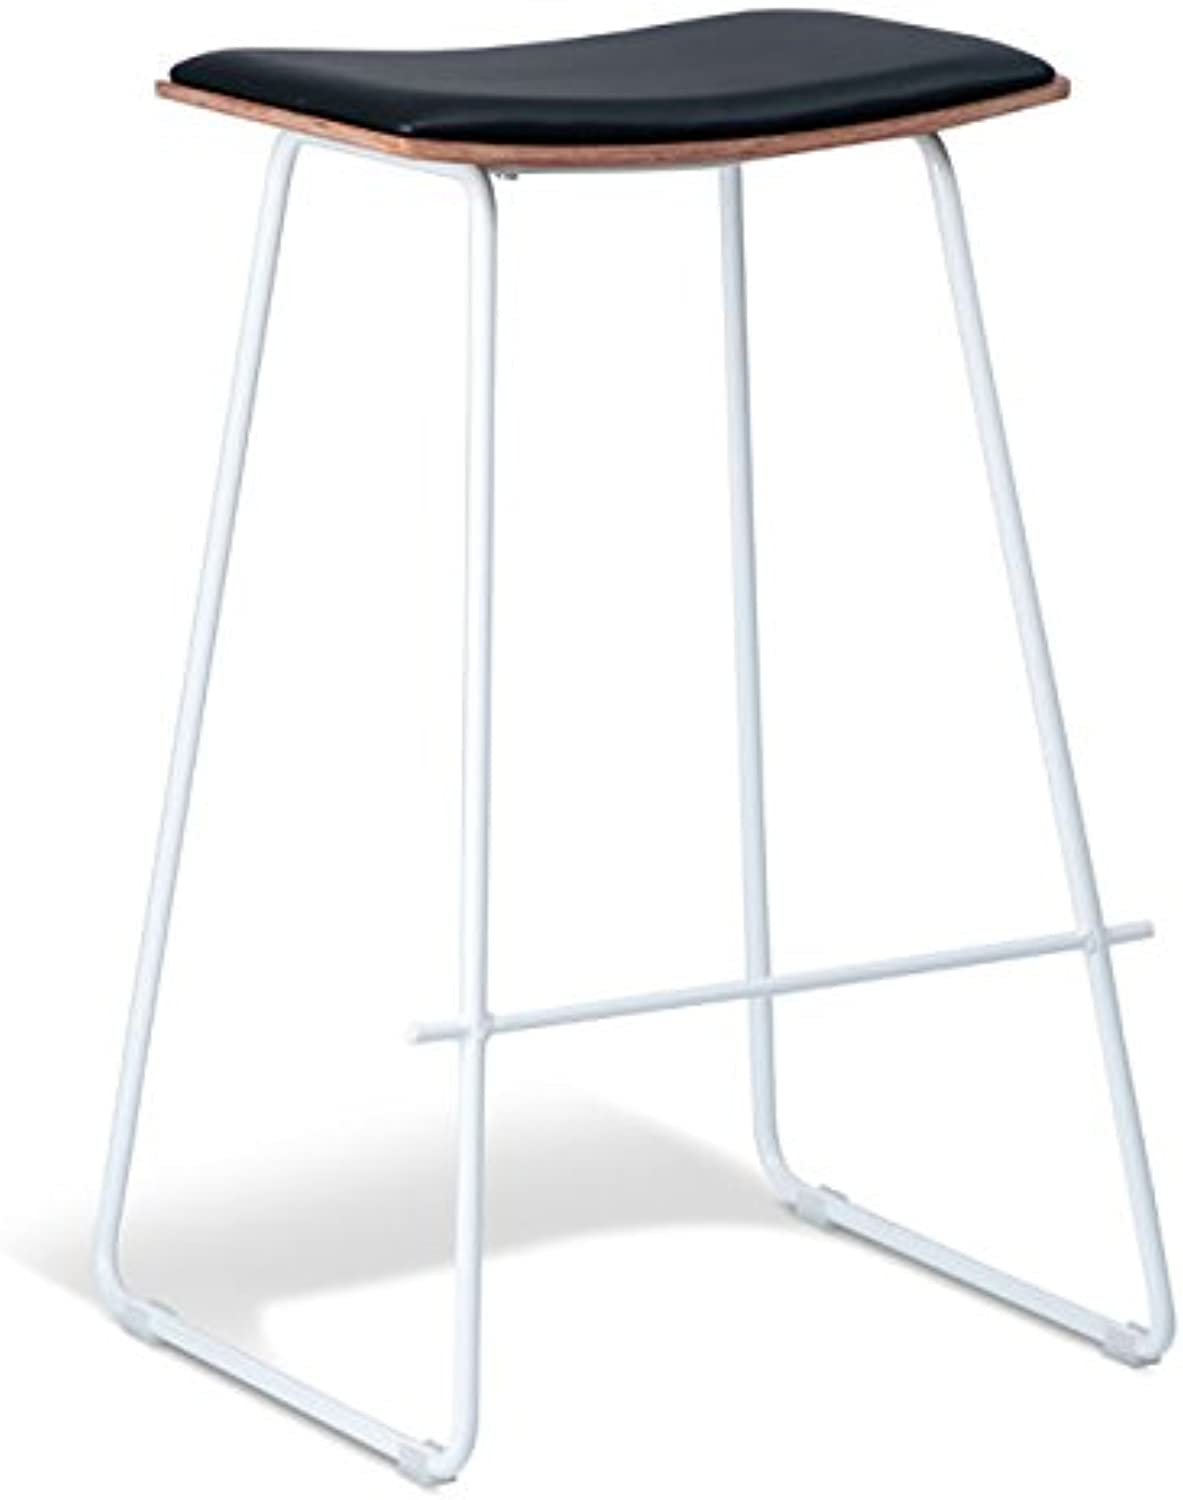 New Set of 2 - Yvonne Potter Replica Y Porter Bar Stool 73m - White Frame - Natural Veneer - Black Cushion Seat